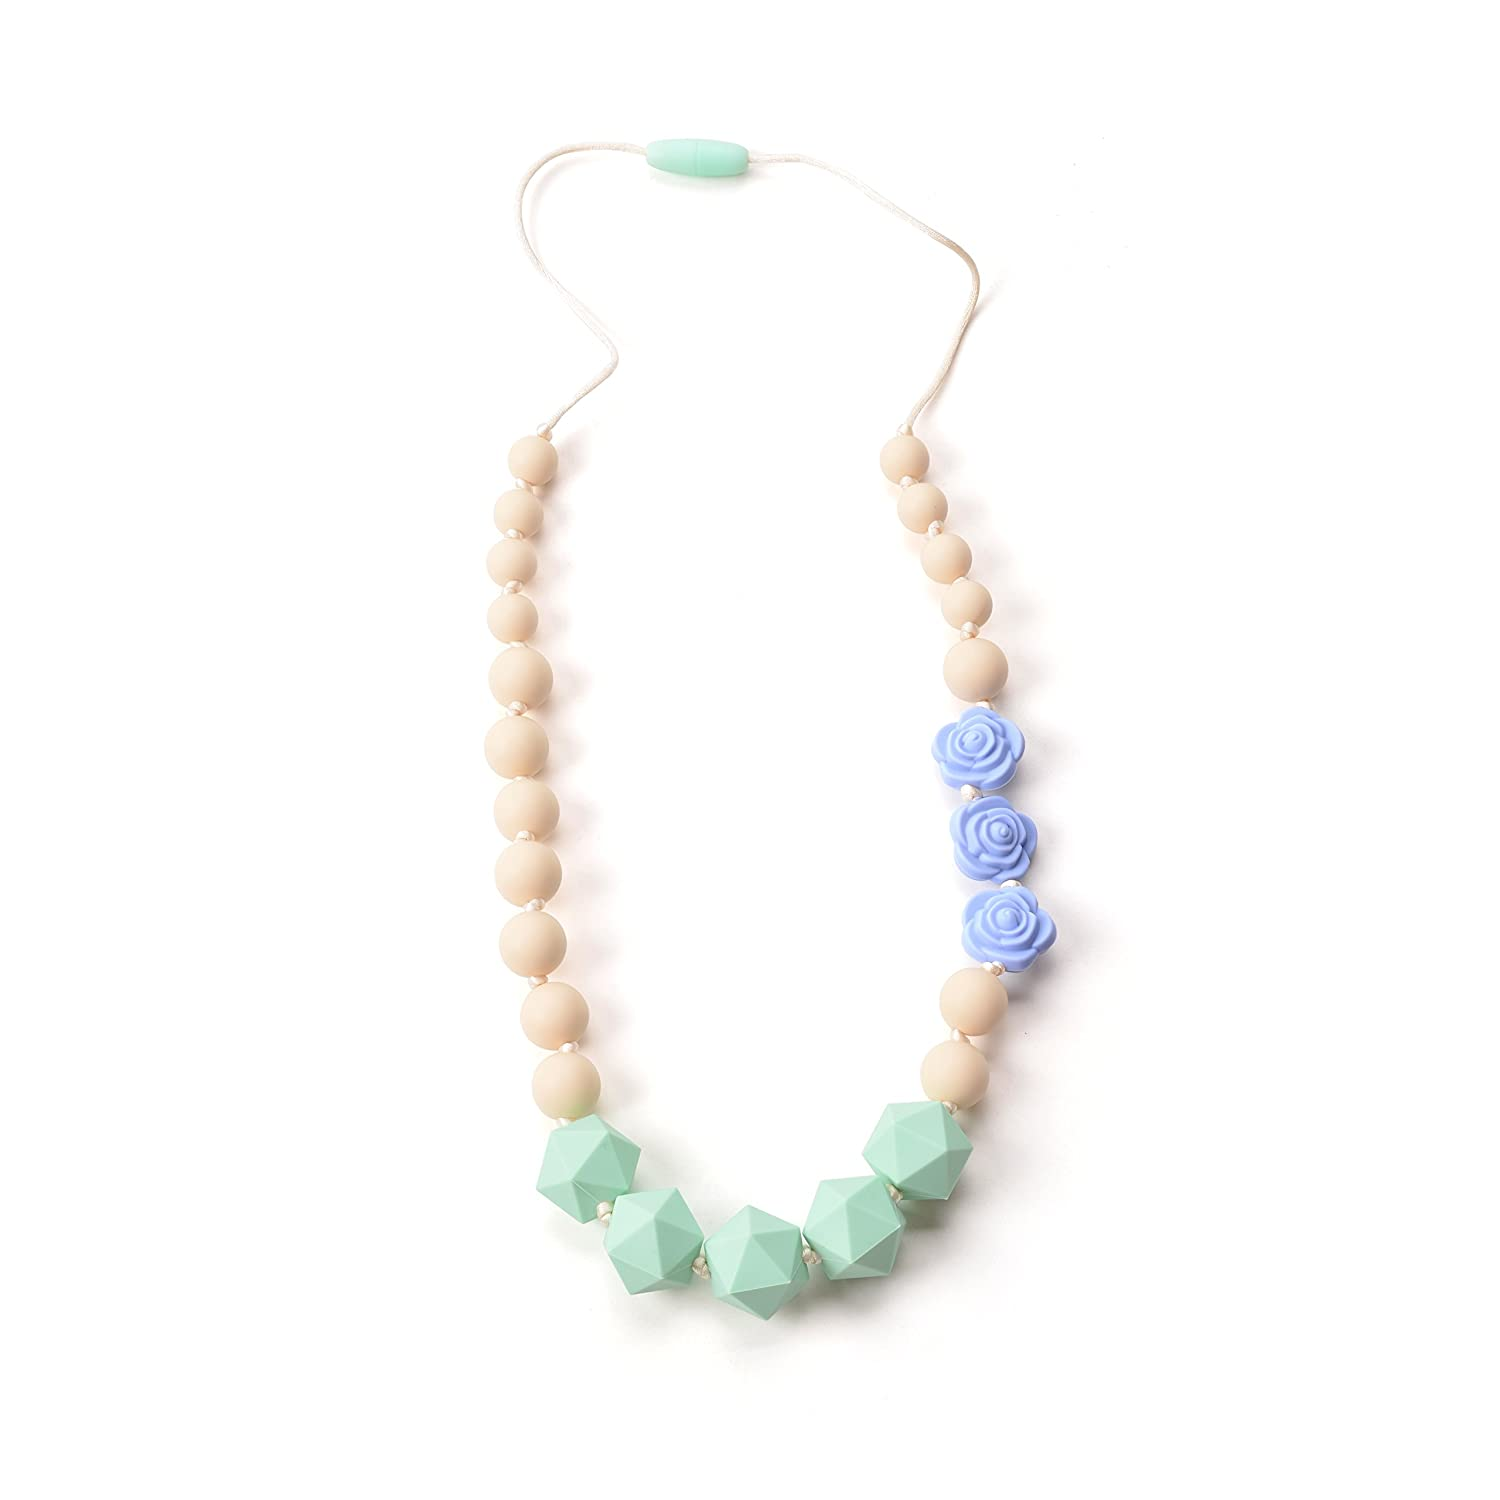 Silicone Teething Beads The Original Baby Teething Necklace for Mom 100/% BPA